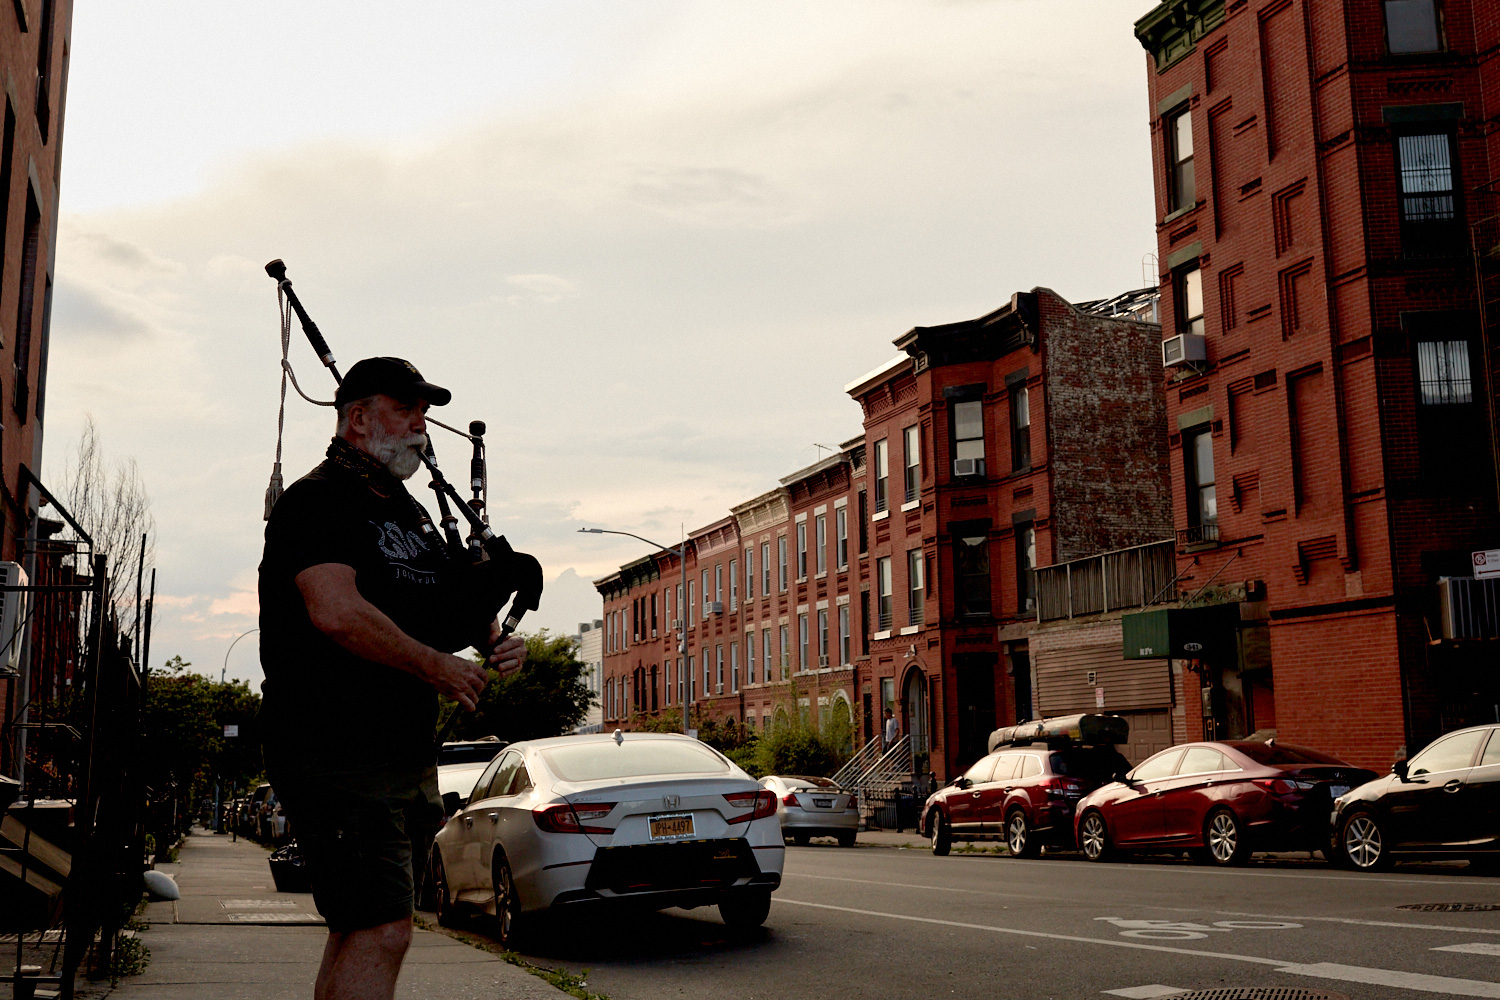 Lone bagpipe player on the sidewalk of a New York street, by Stephen Speranza